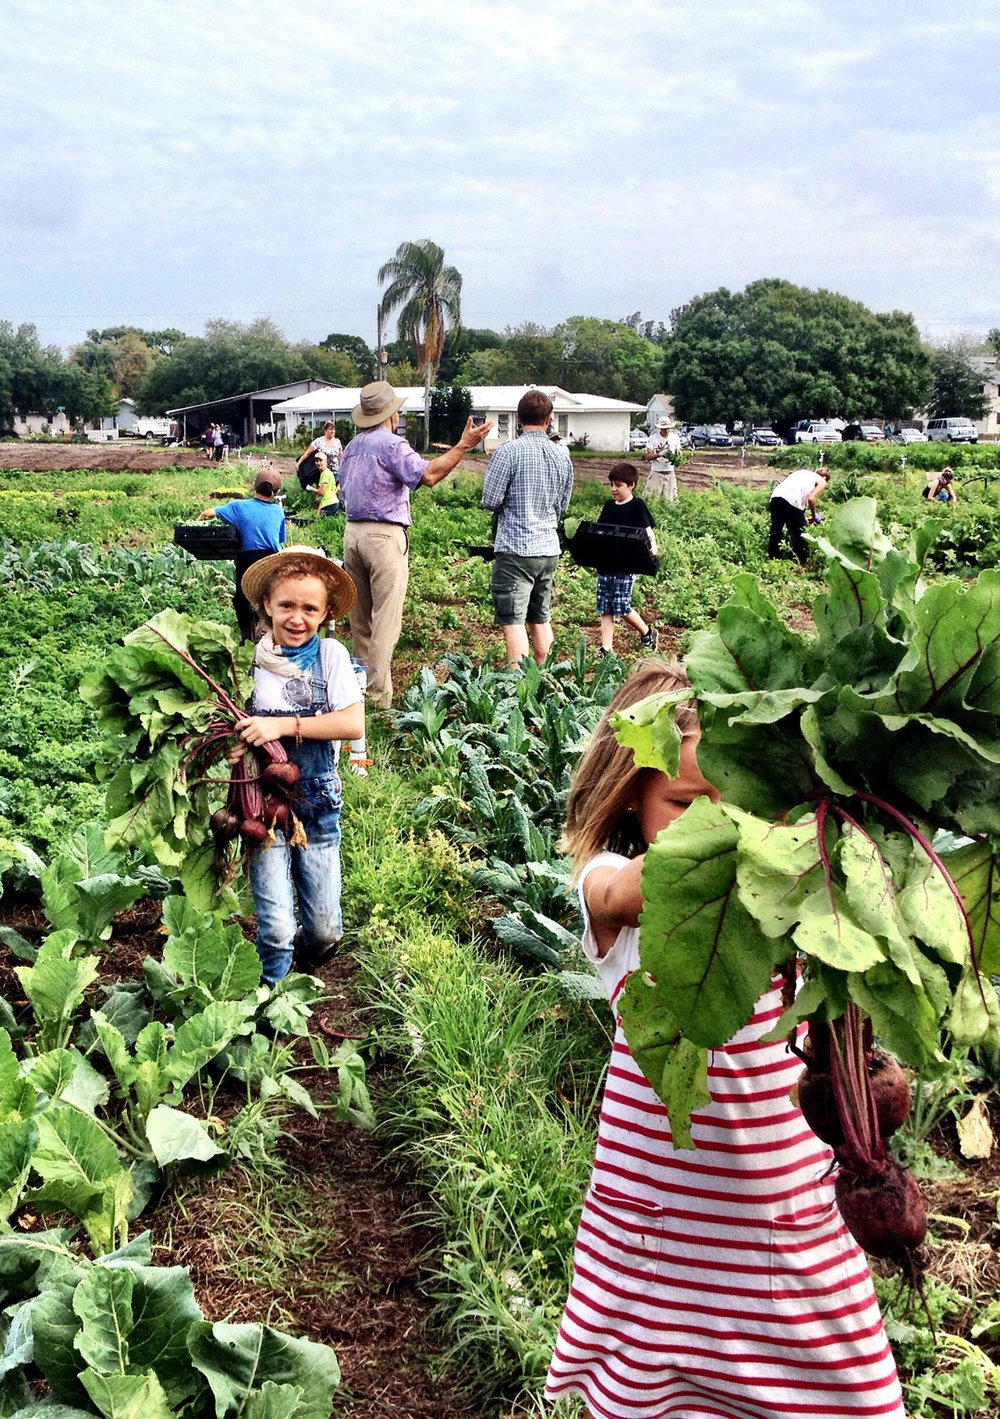 Mangrove School of Sarasota volunteers lend a hand harvesting beets. Photo by Erin Melia